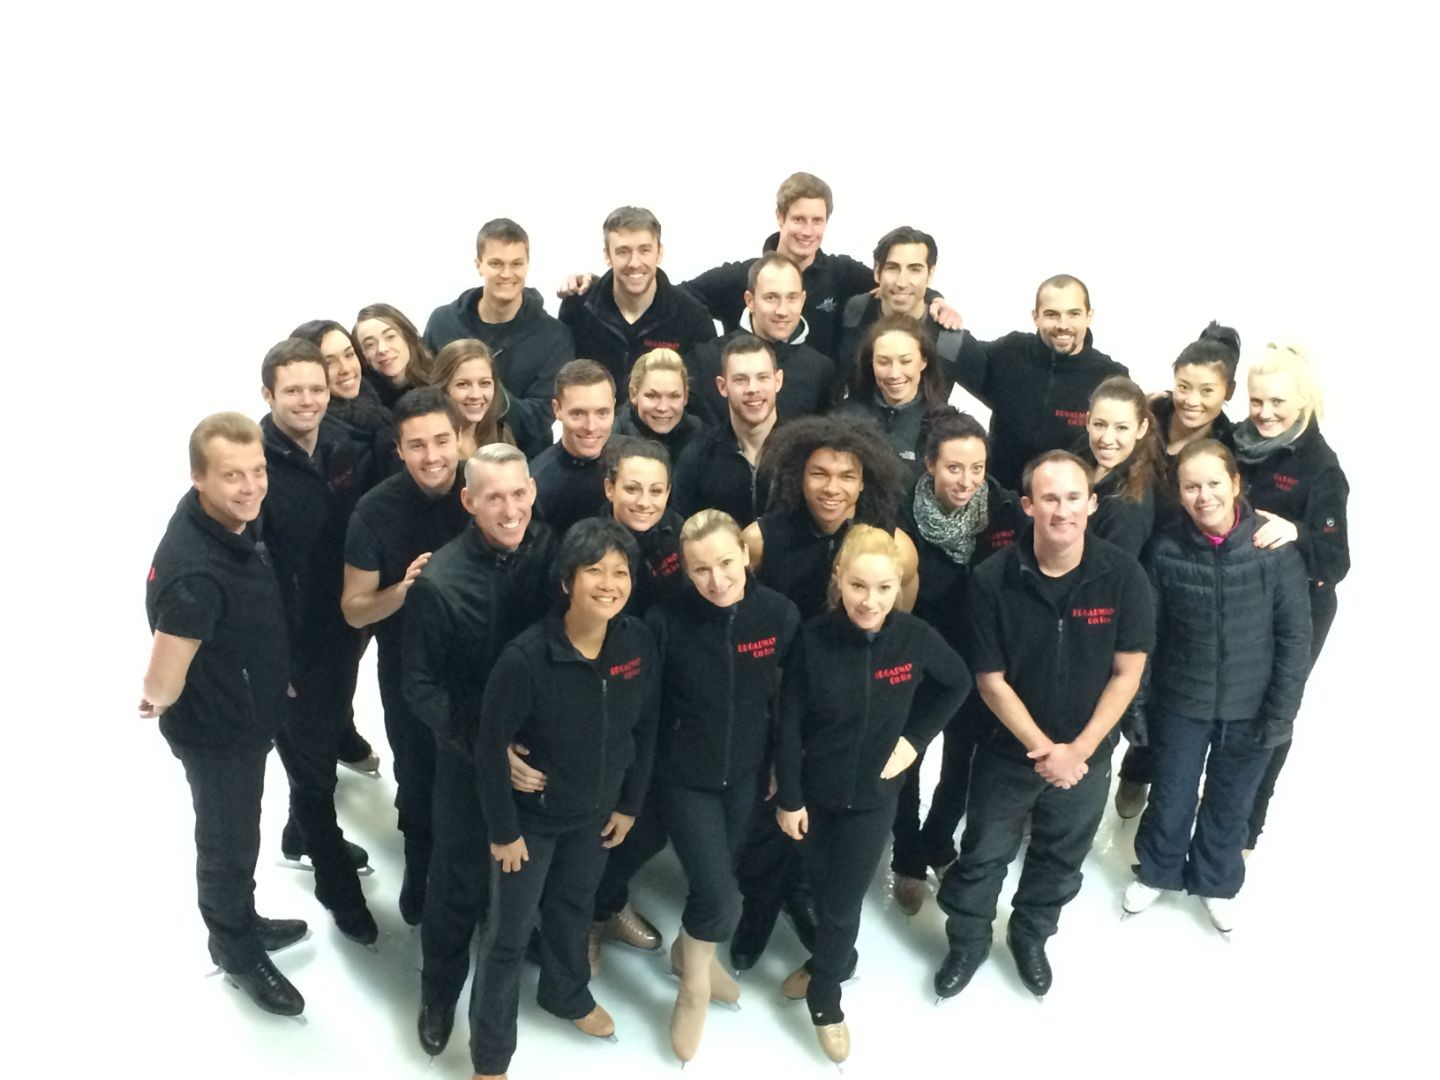 A group shot of skaters in all black featuring Sarah Kawahara.